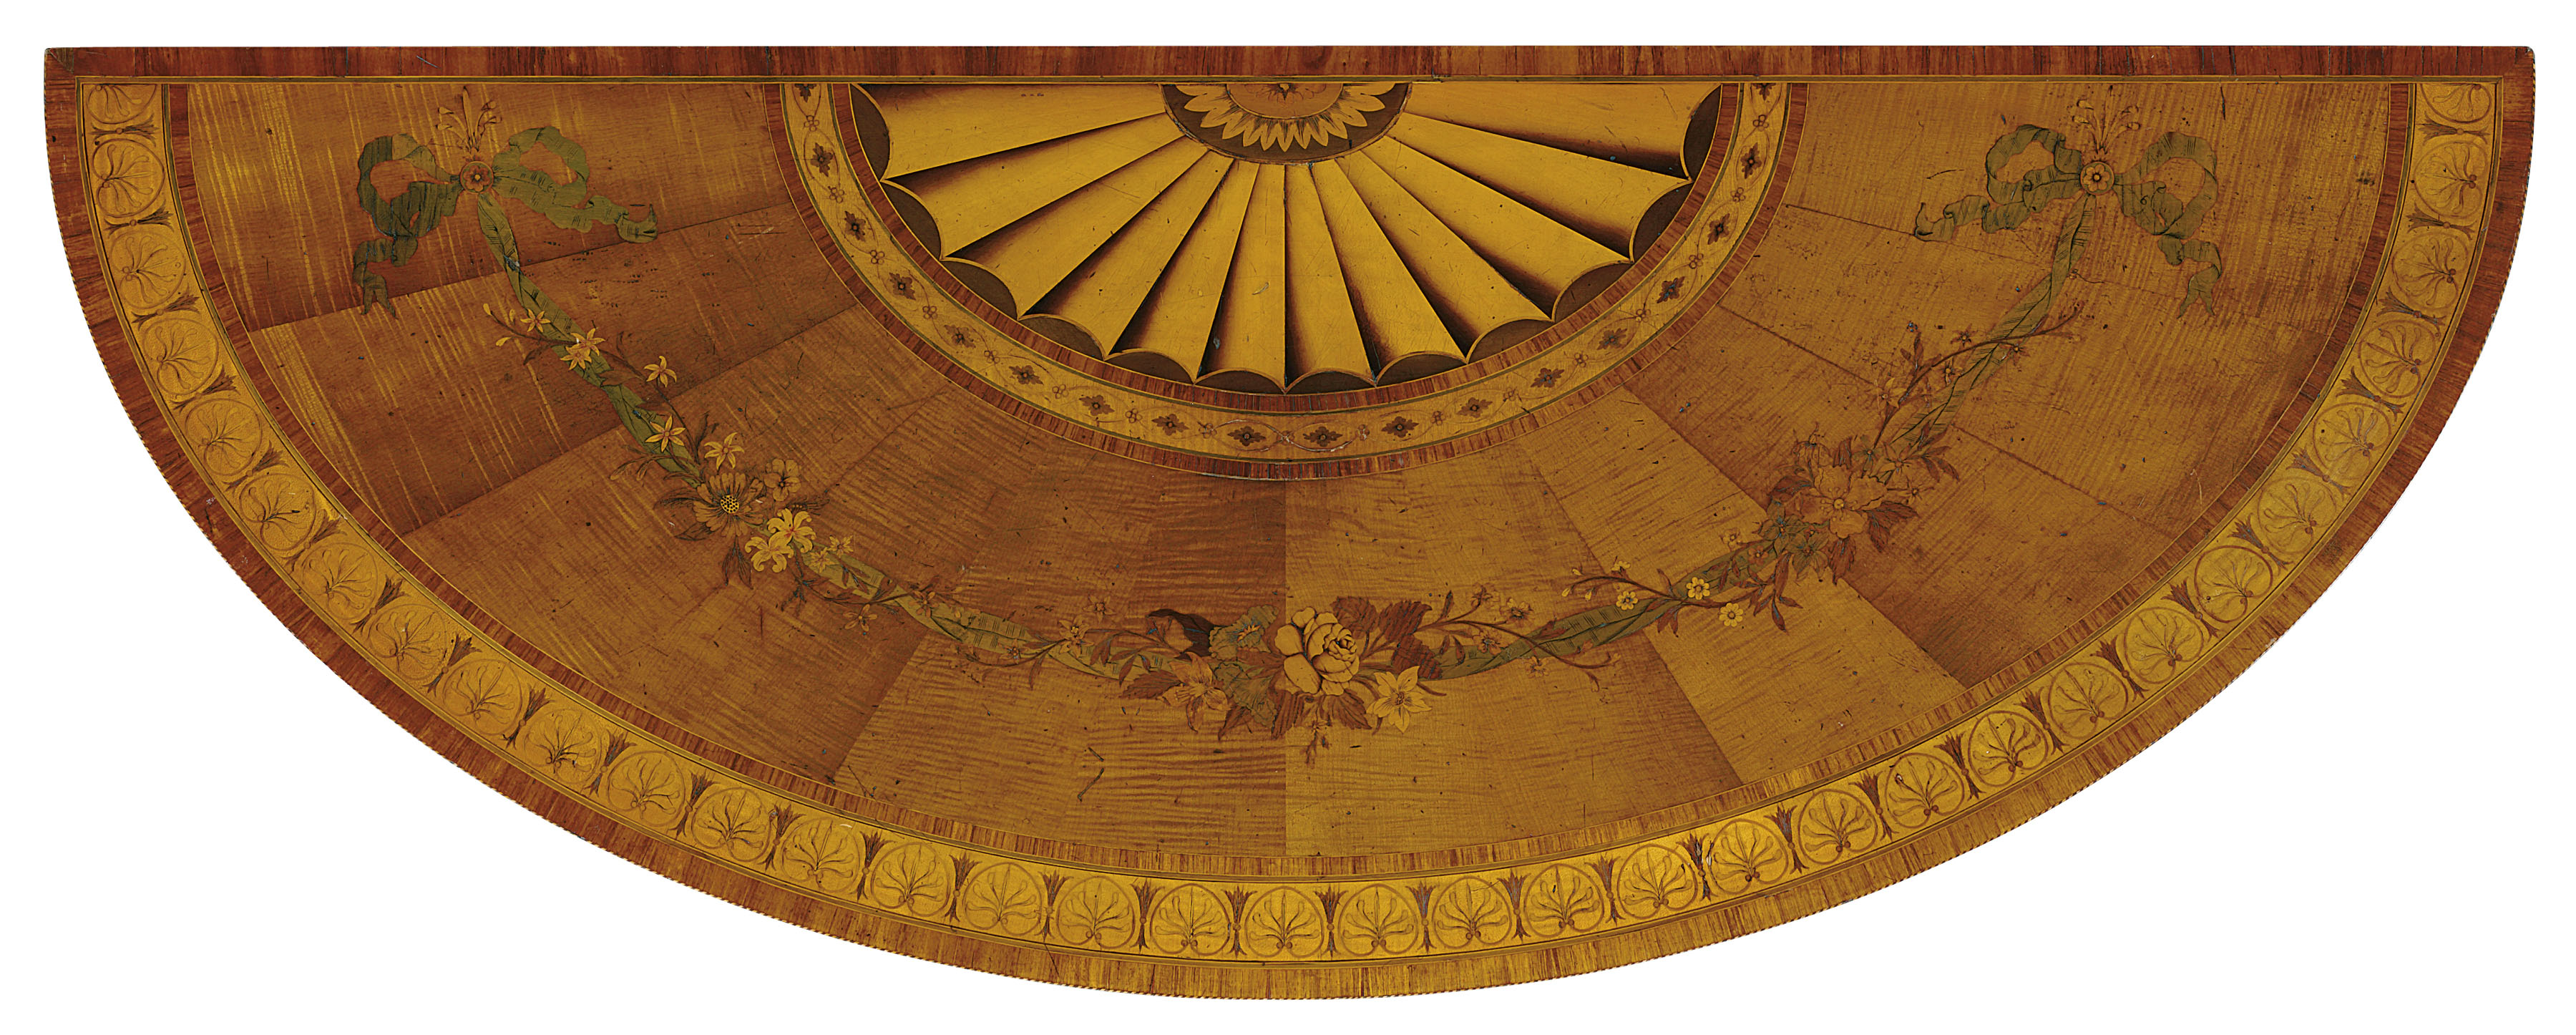 A PAIR OF GEORGE III SYCAMORE, SATINWOOD AND MARQUETRY PIER TABLES